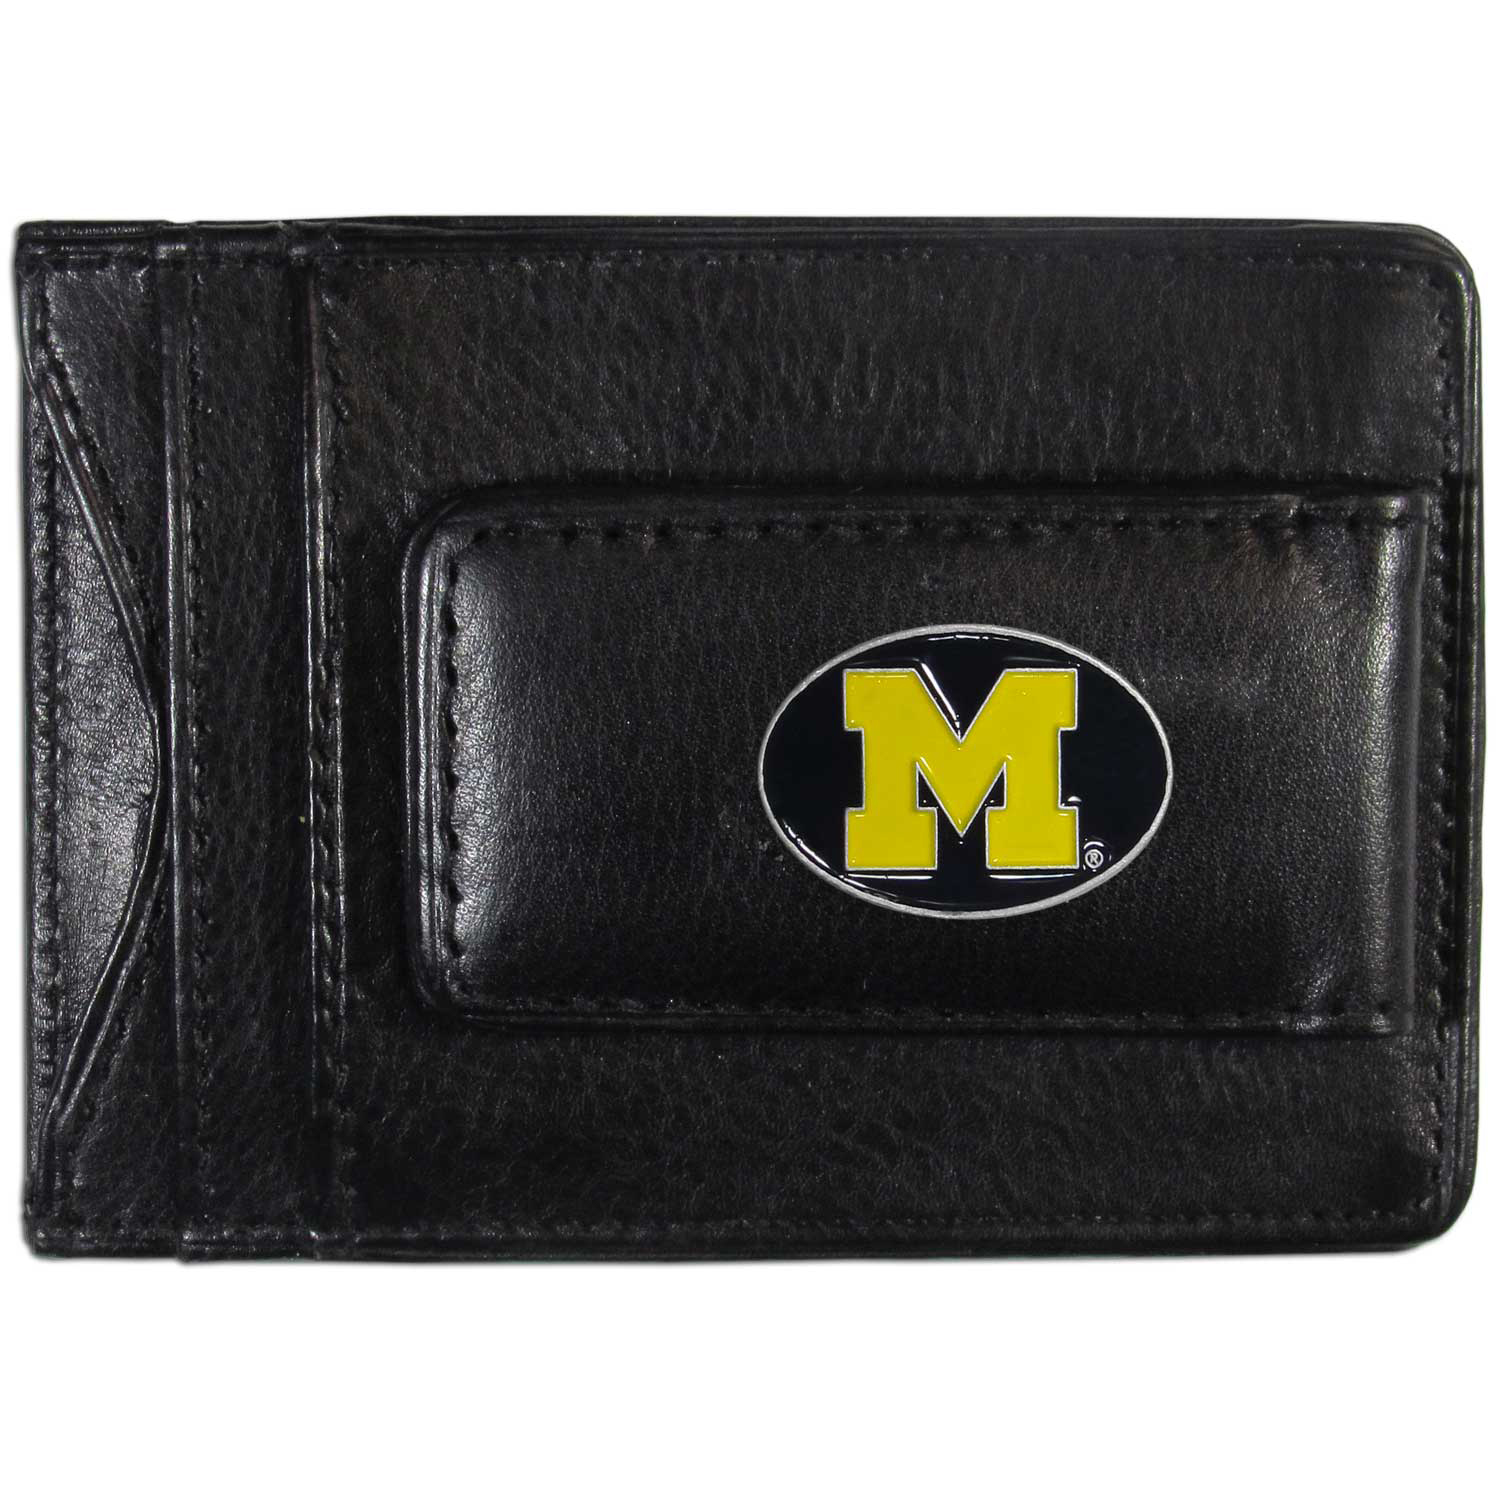 Michigan Wolverines Leather Cash & Cardholder - Our Michigan Wolverines genuine leather cash & cardholder is a great alternative to the traditional bulky wallet. This compact wallet has credit card slots, windowed ID slot and a magnetic money clip that will not damage your credit cards. The wallet features a metal team emblem.